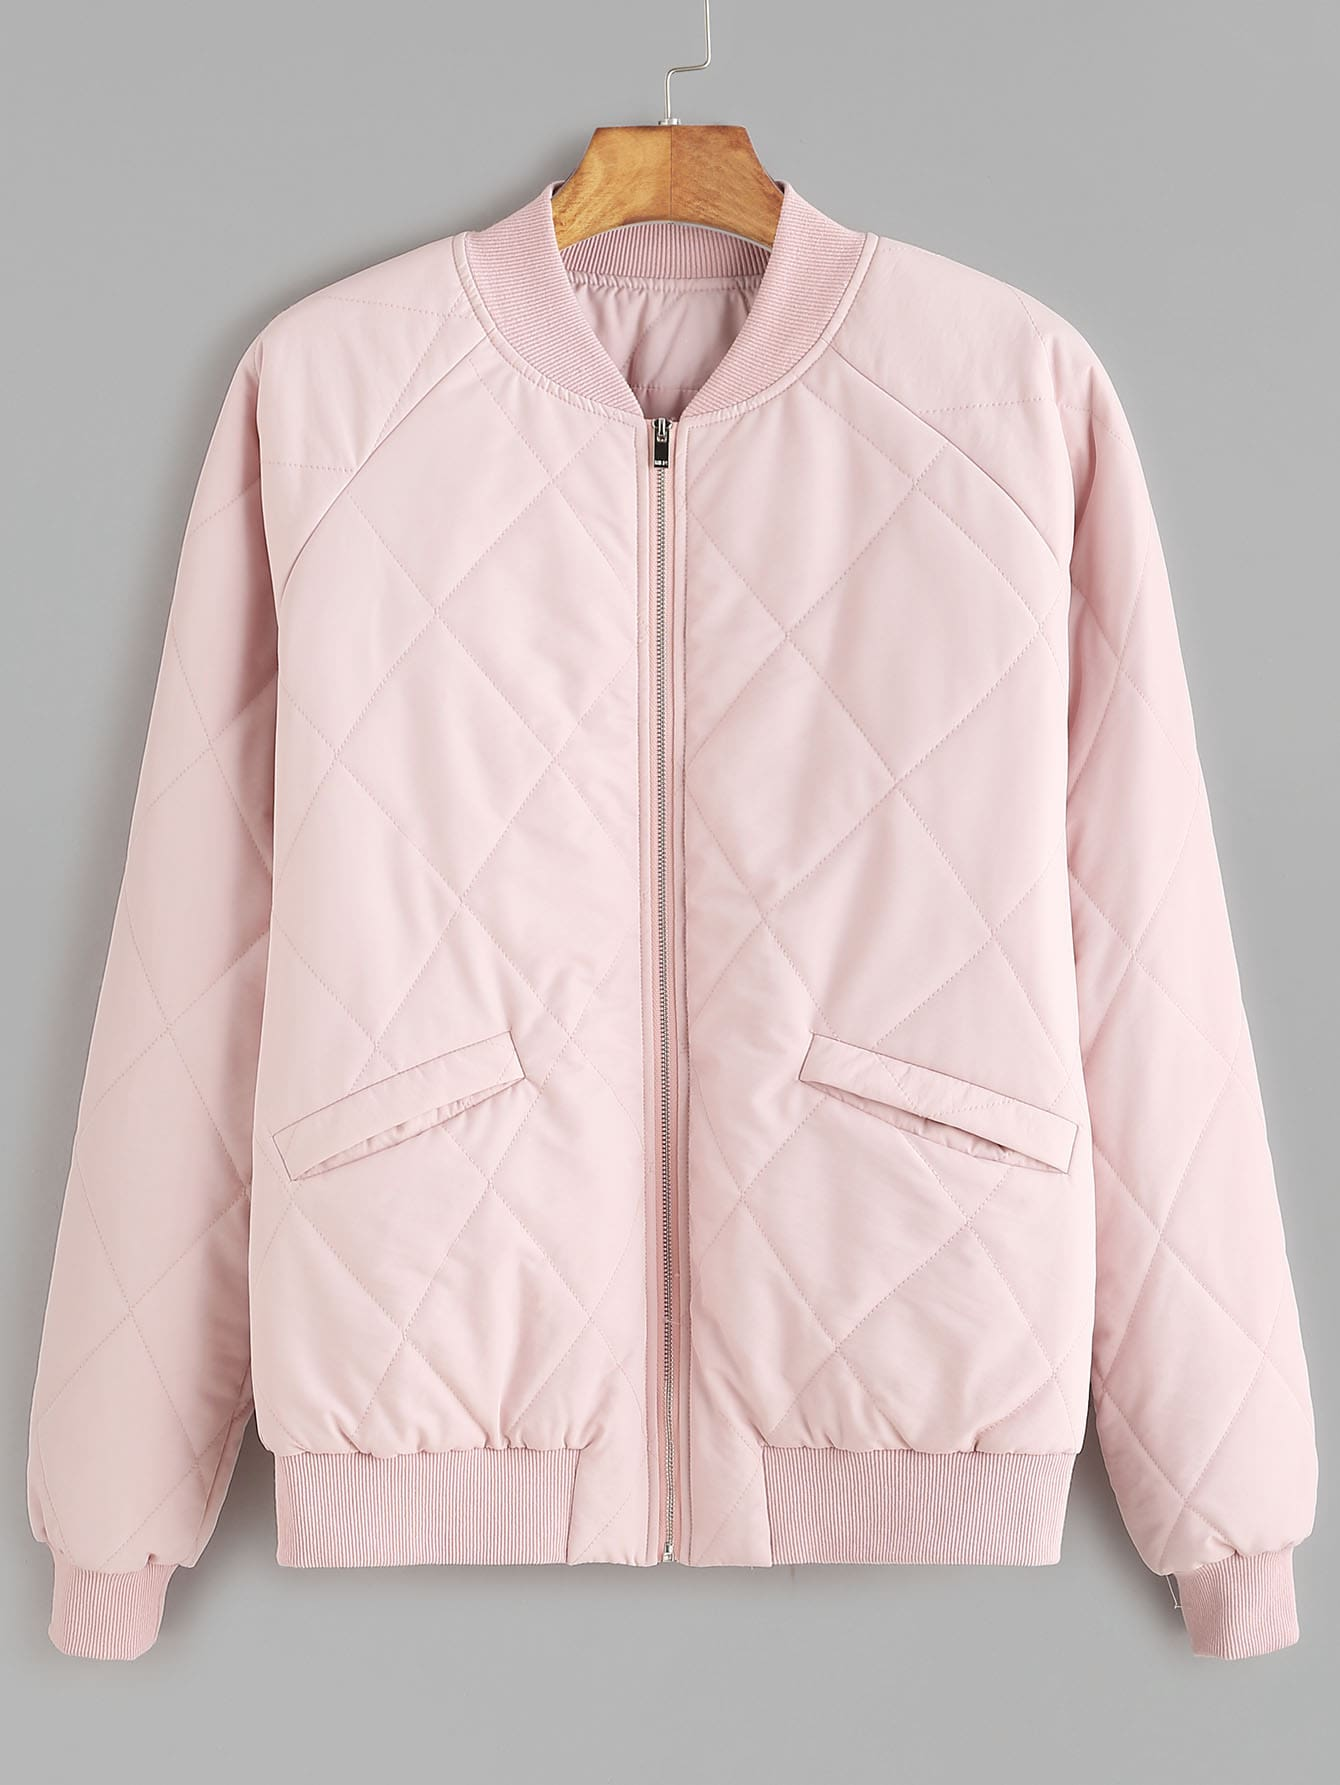 Pink Zipper Up Raglan Sleeve Quilted JacketPink Zipper Up Raglan Sleeve Quilted Jacket<br><br>color: Pink<br>size: L,M,S,XS